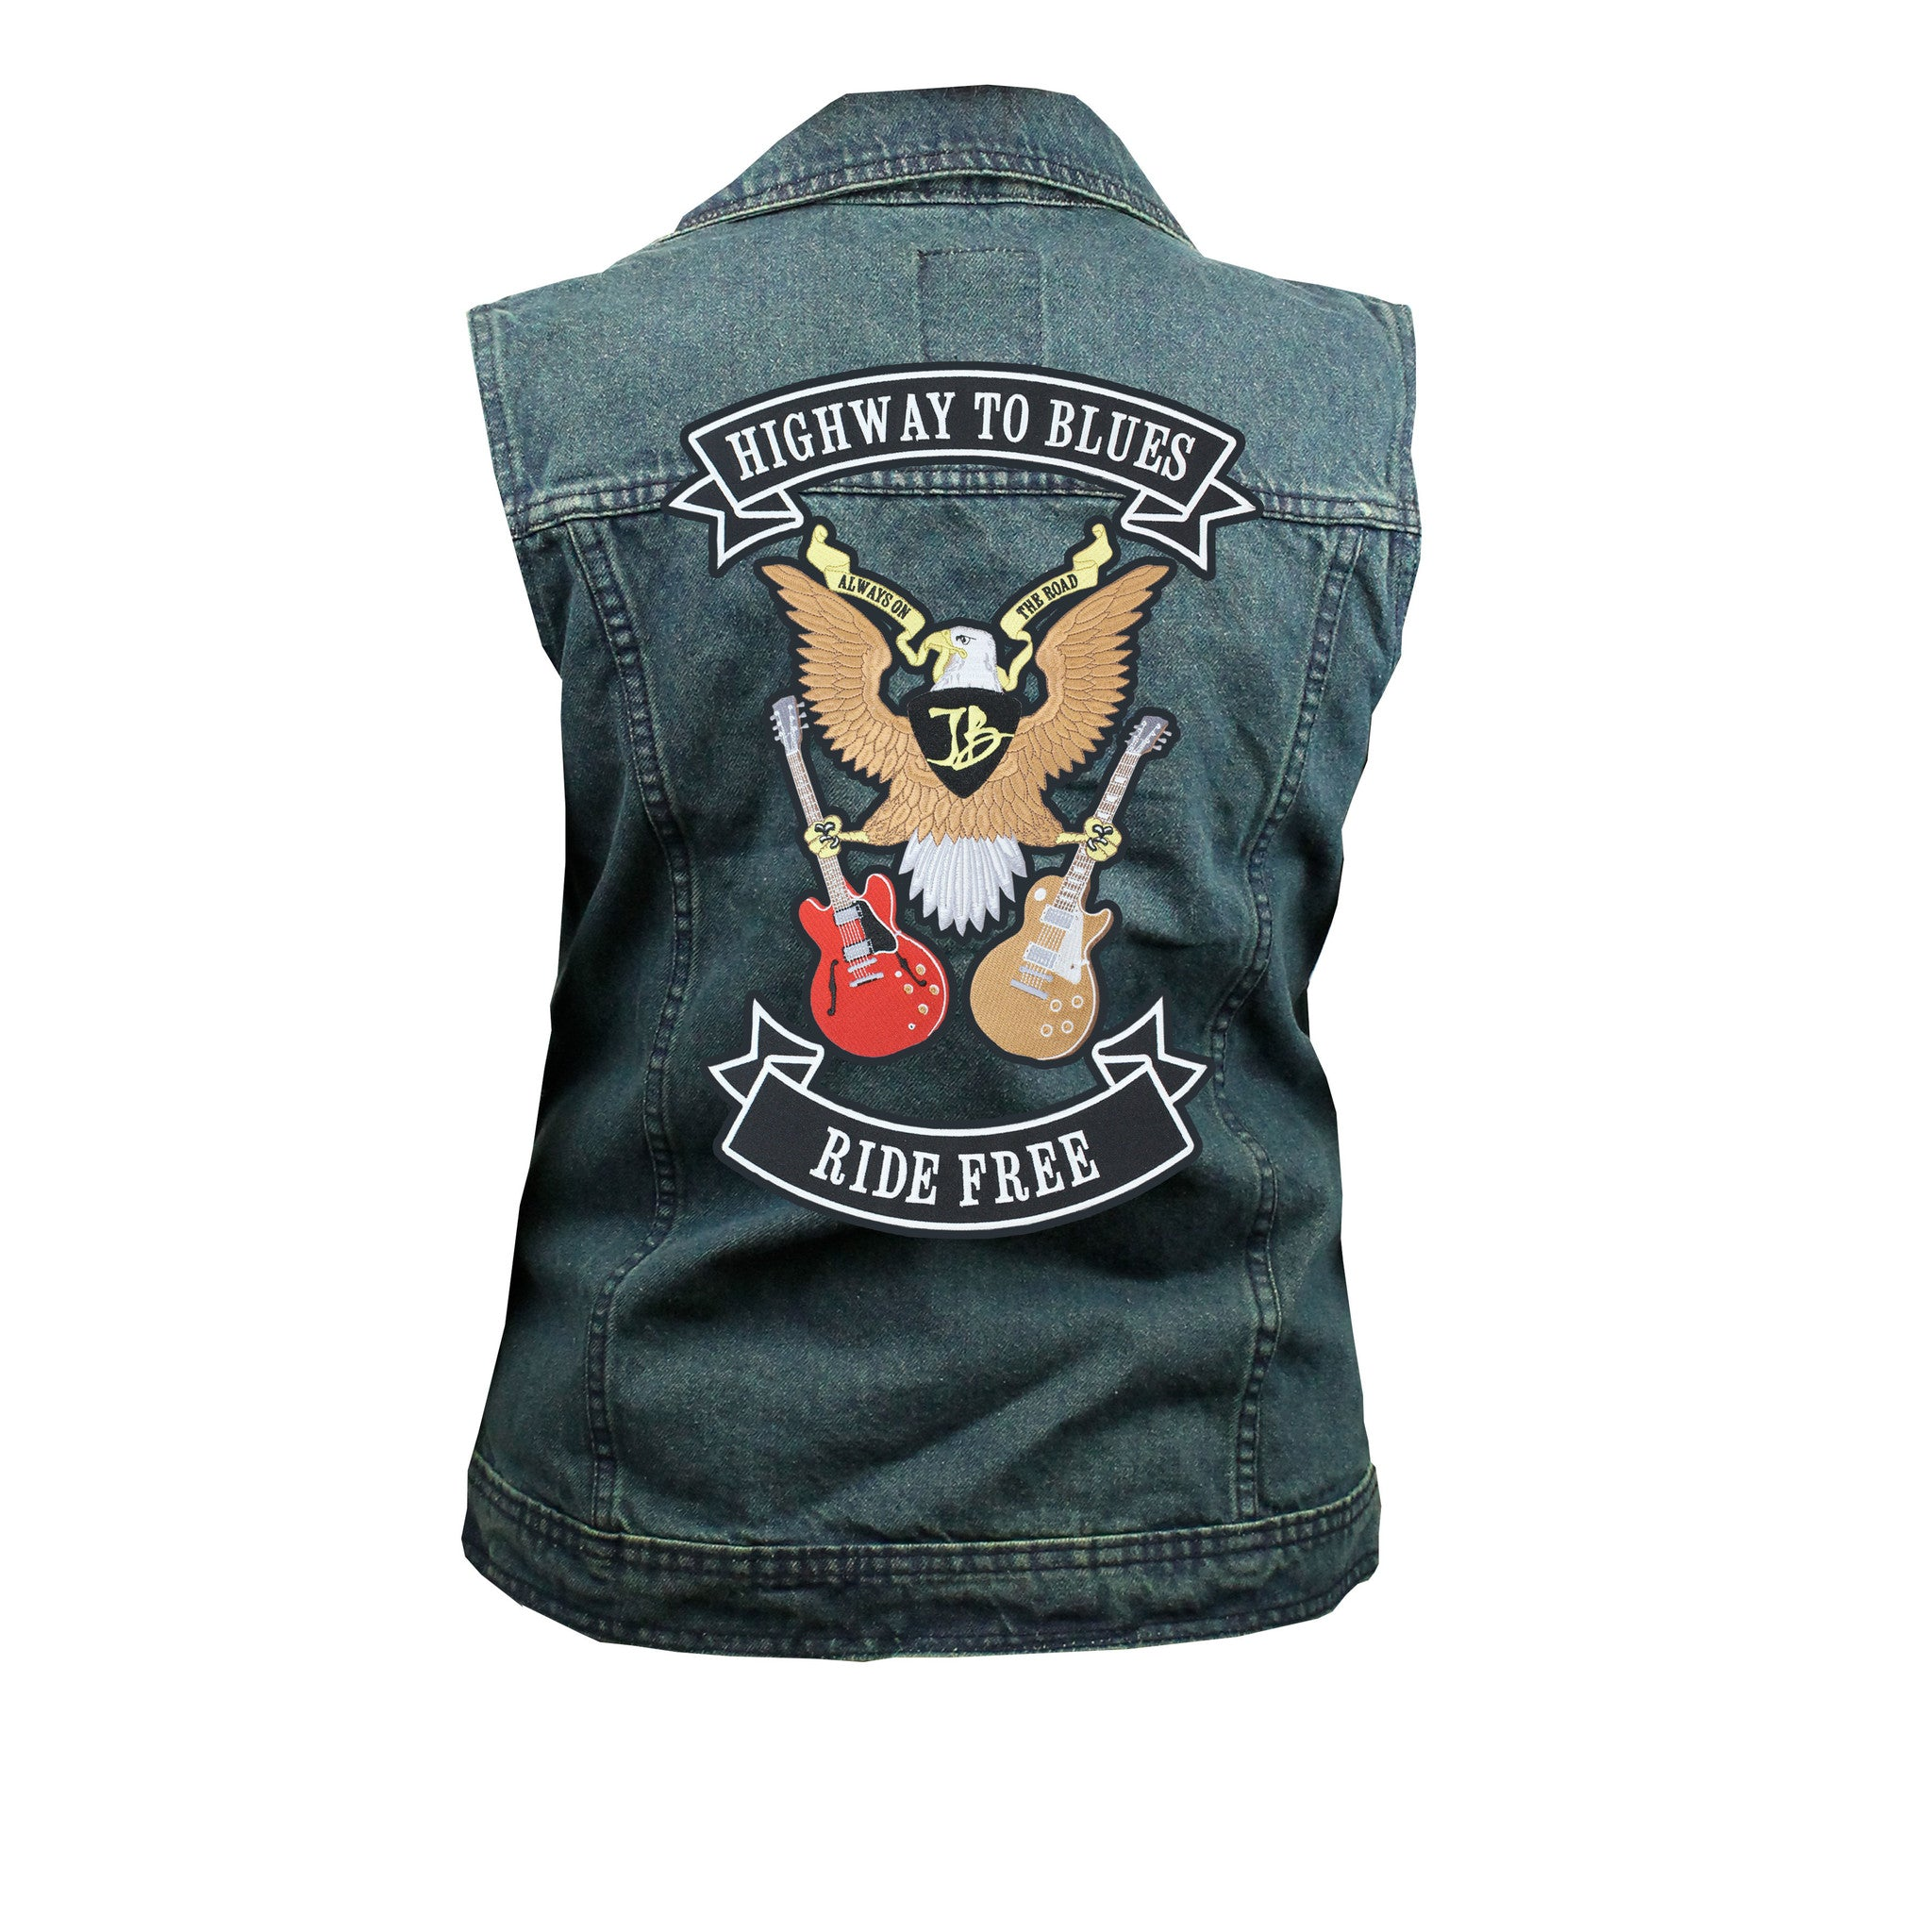 Highway to Blues Back Patch - Blue Denim Vest with Studded Collar (Women)